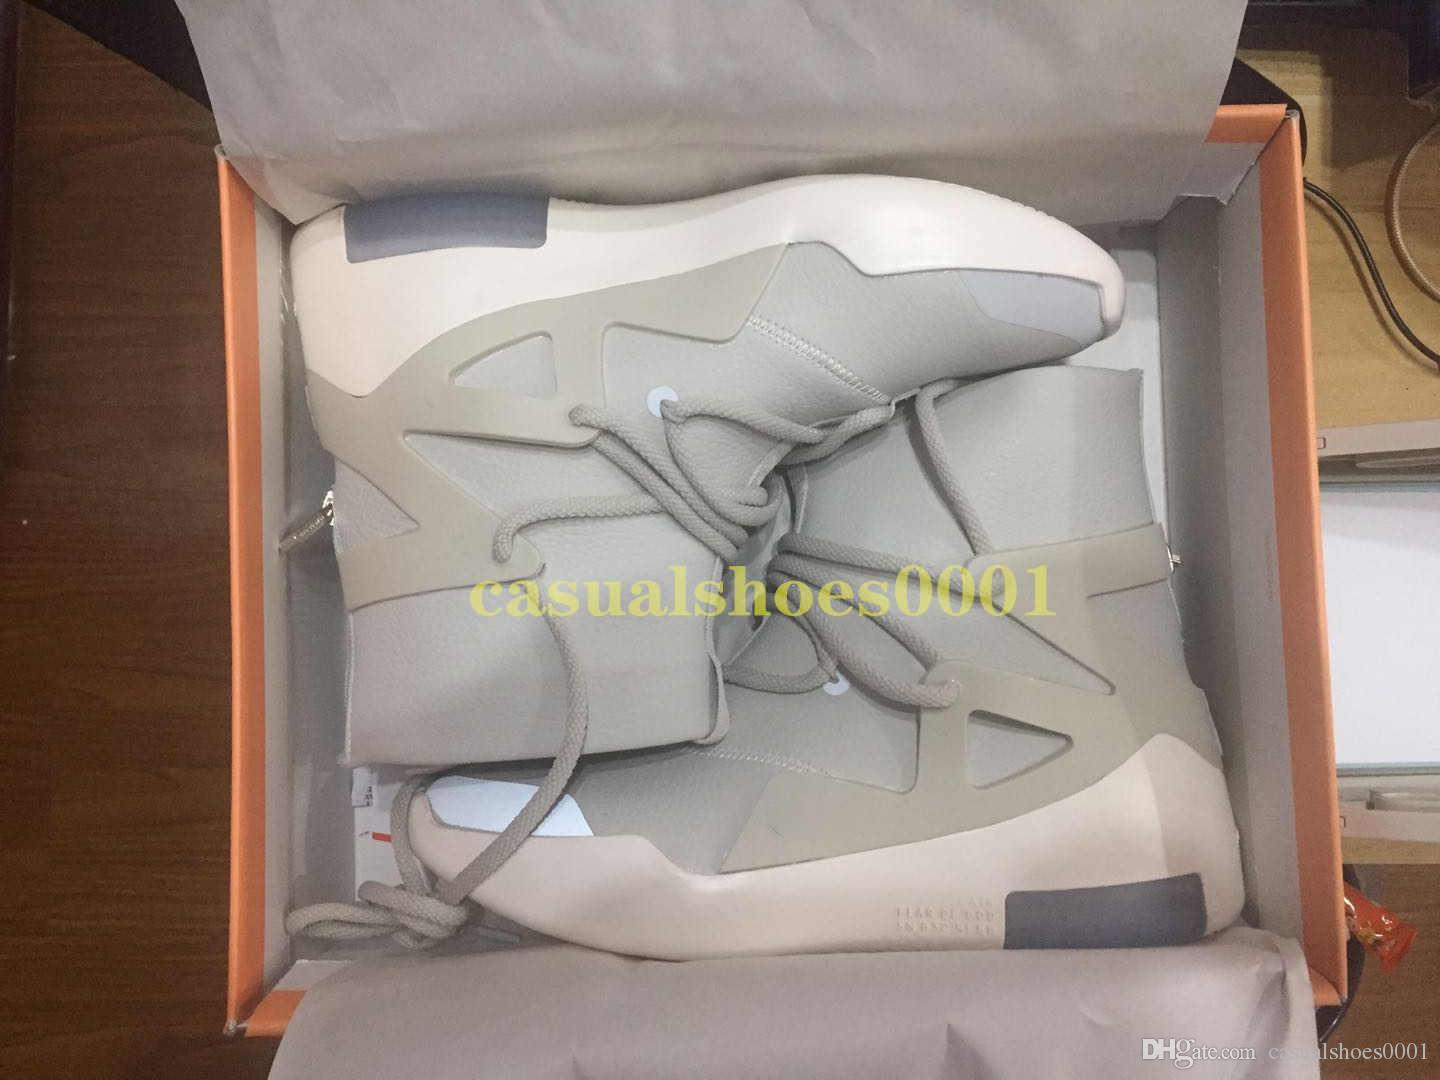 Lager x Markenschuhe Air Fear Of God 1 Sneaker Herren Sneaker Frosted Spruce Orange luxe High Bottom Authentic Schuhe Designer Größe 40-46 s06